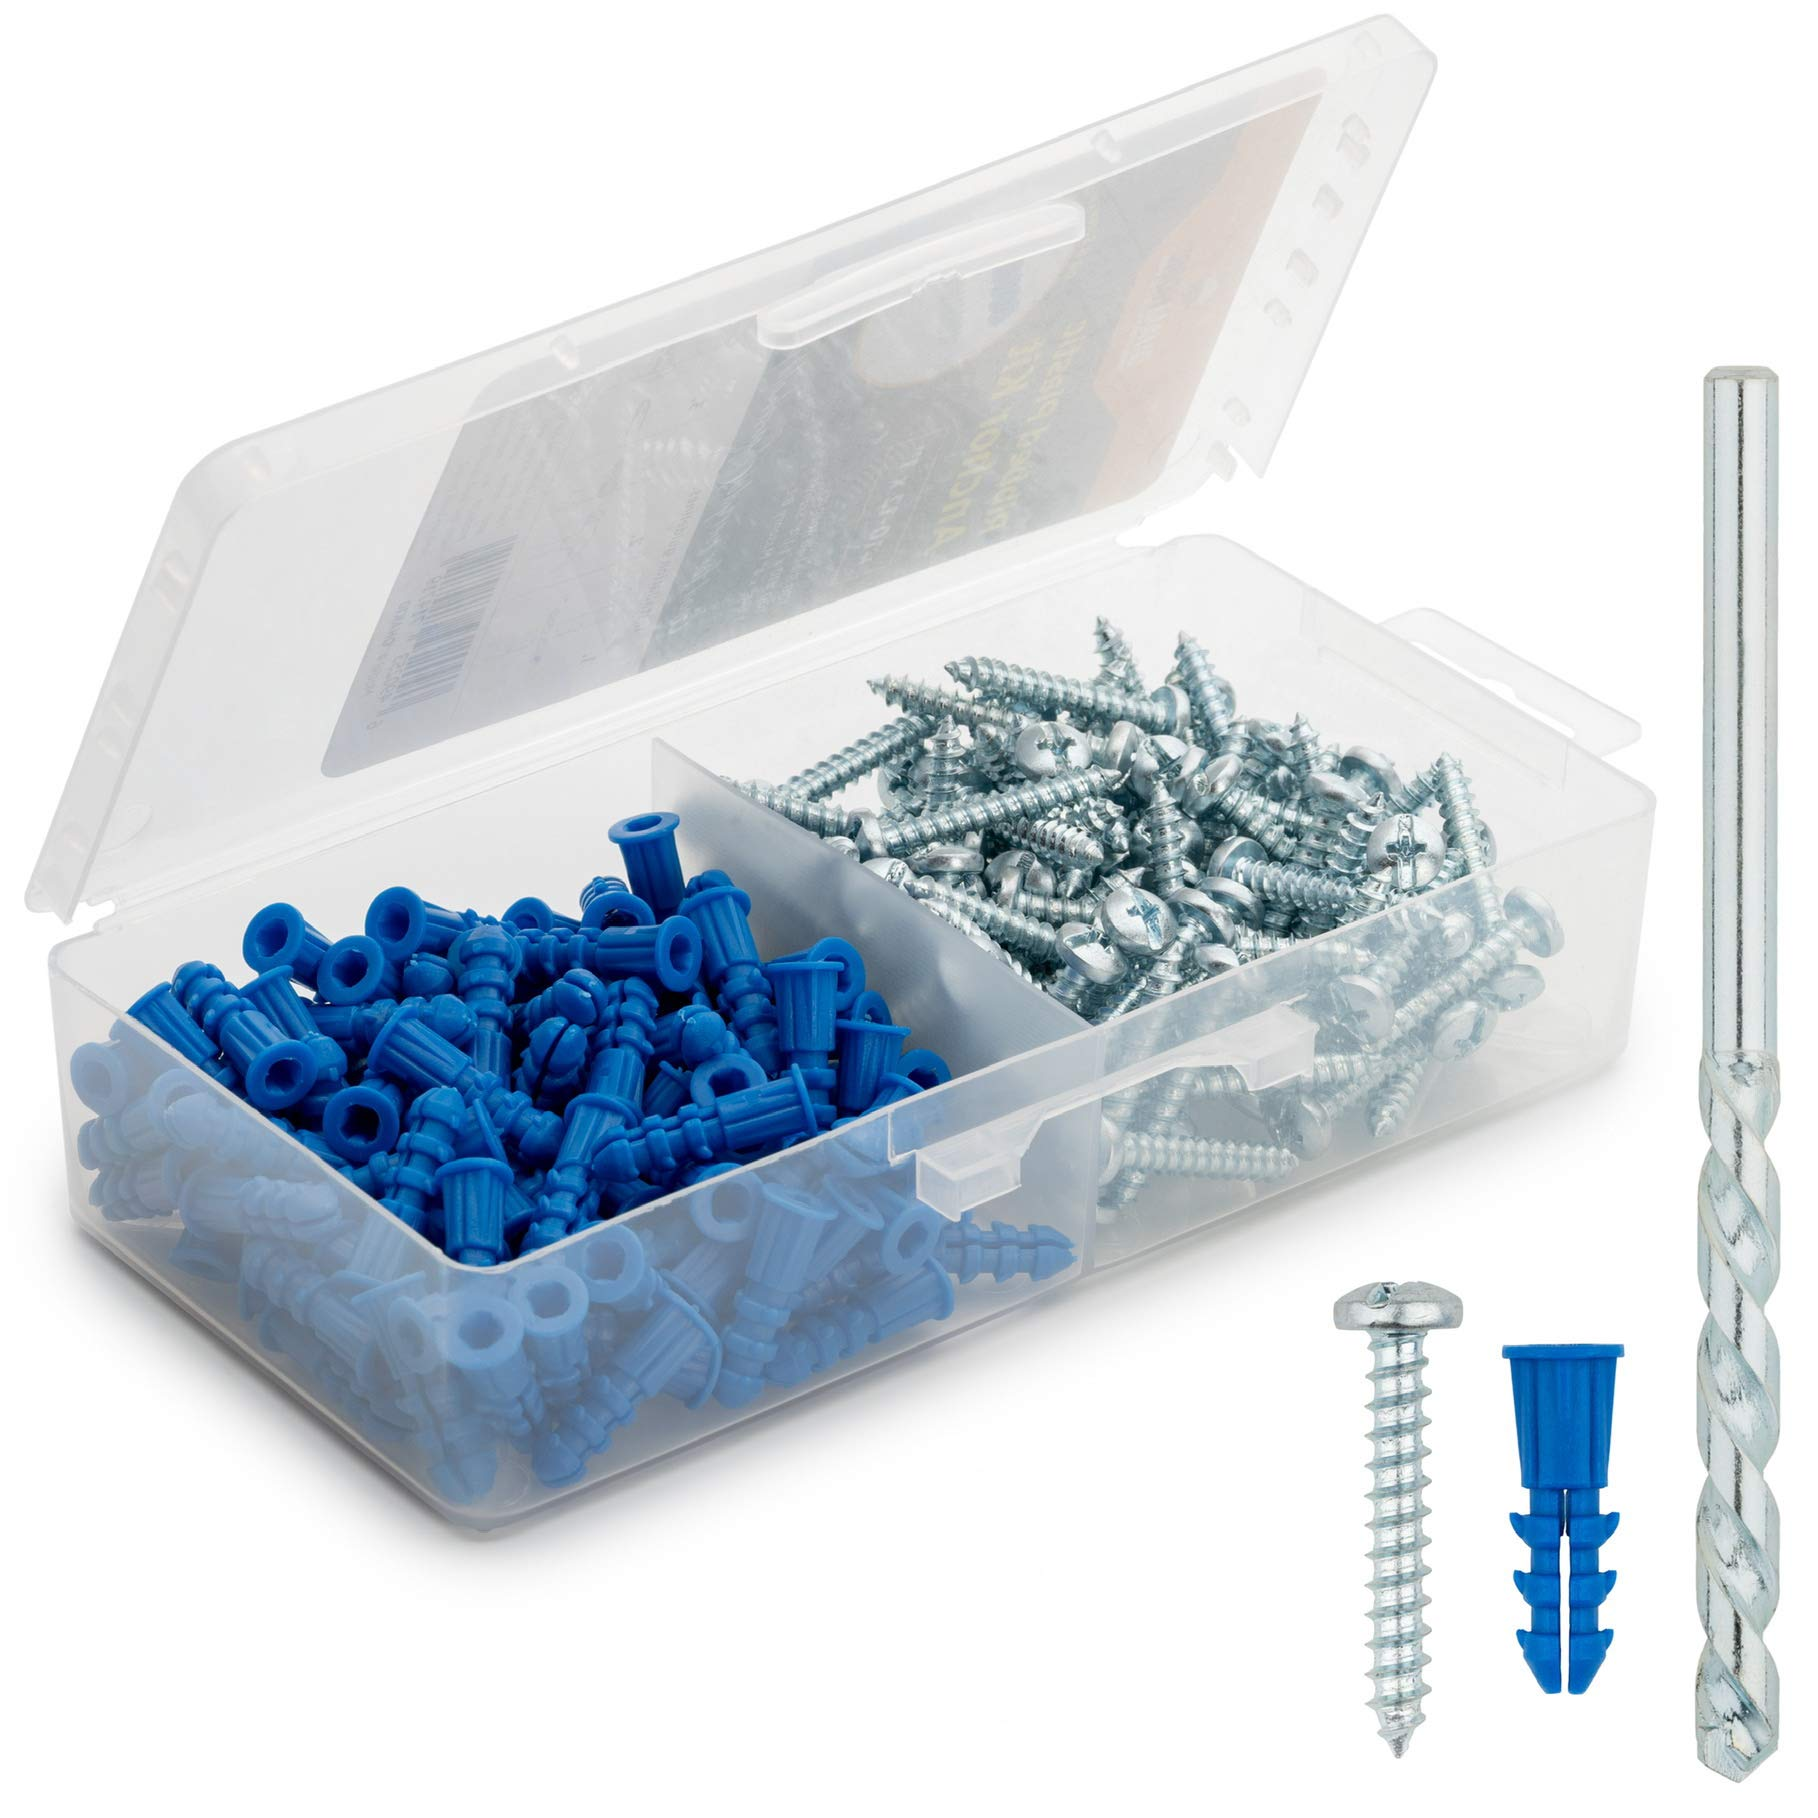 Glarks 220-Pieces Plastic Self Drilling Drywall Ribbed Anchors Hollow-Wall Anchor with Screws Assortment Kit for Drywall Hollow-Wall Hanging Wall Shelf or Blinds